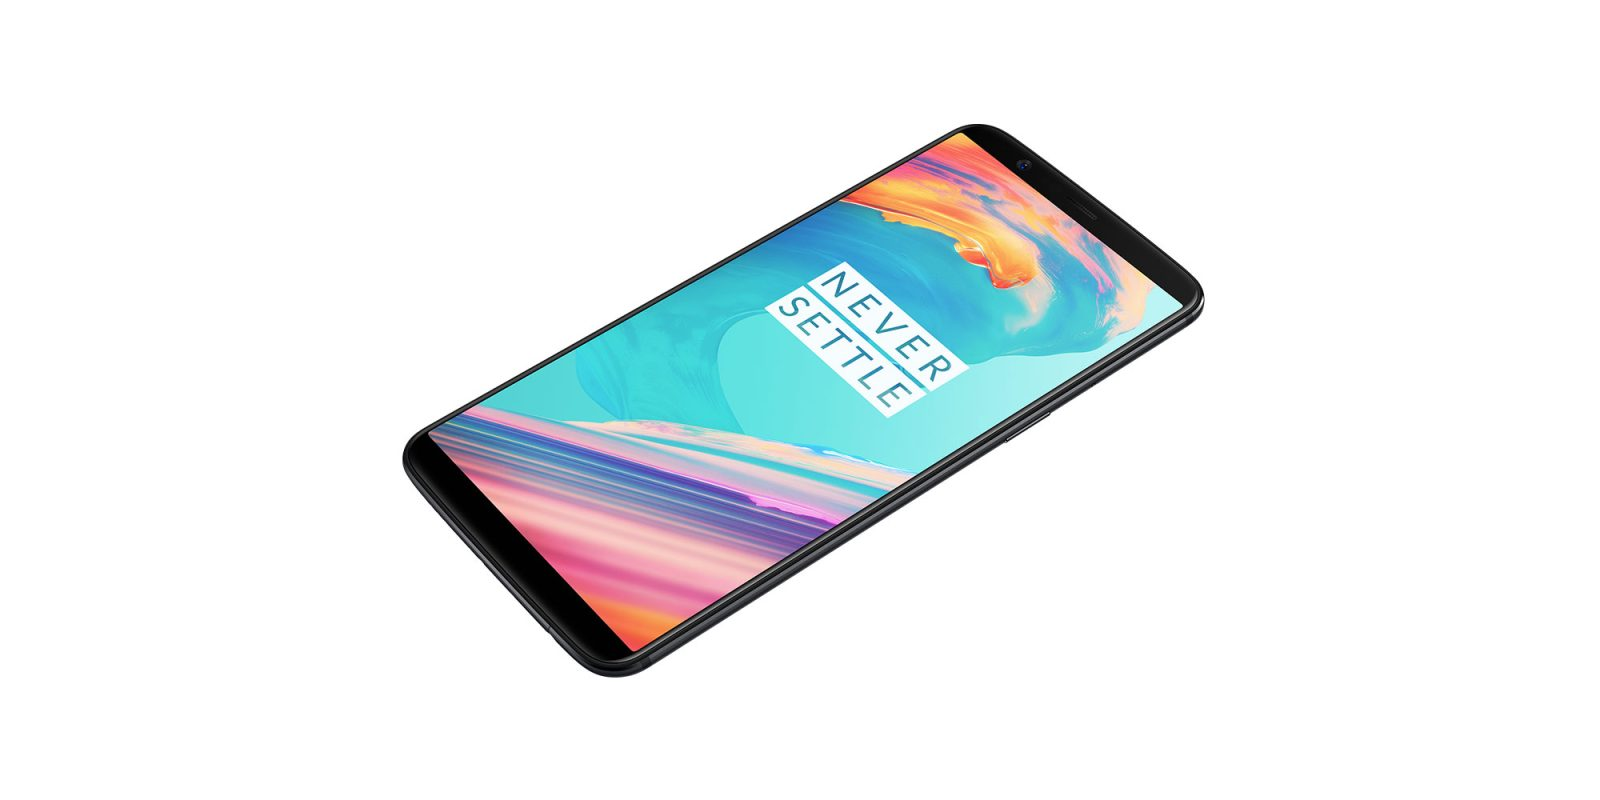 Download The Official Oneplus 5t Wallpapers In 4k Resolution Here